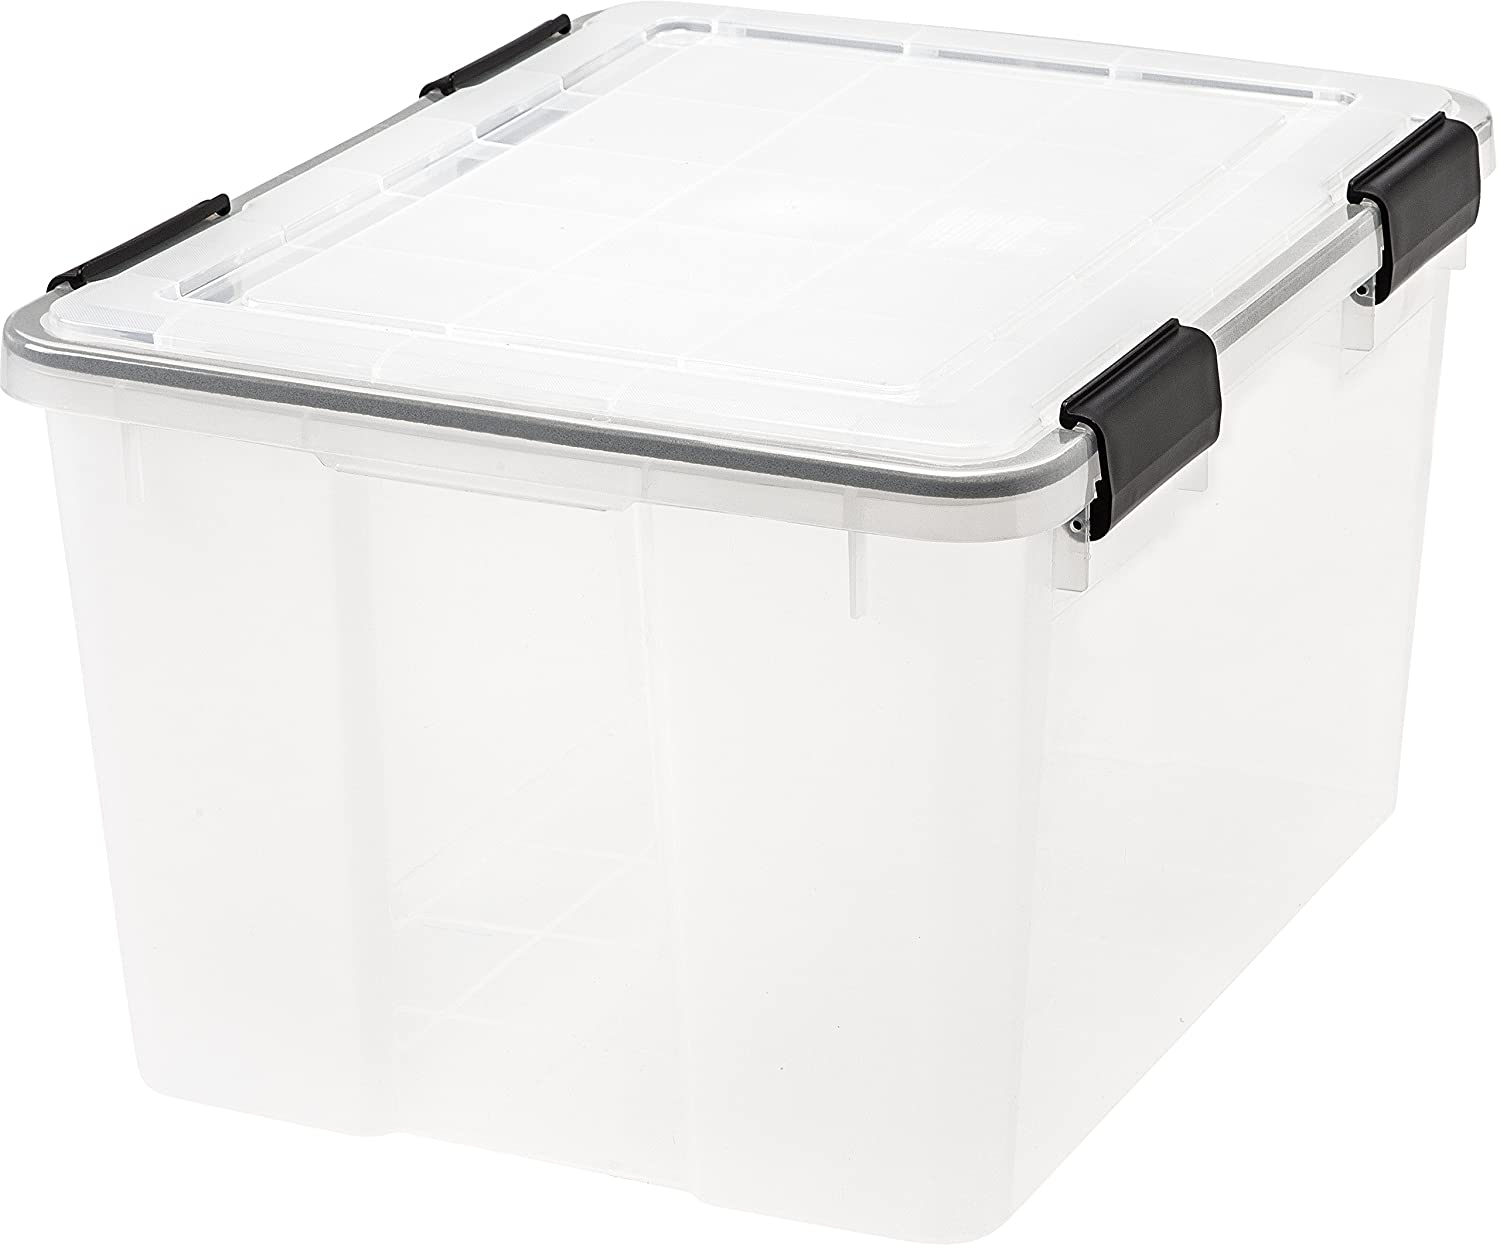 Amazoncom IRIS USA Inc IRIS 46 Quart WEATHERTIGHT Storage